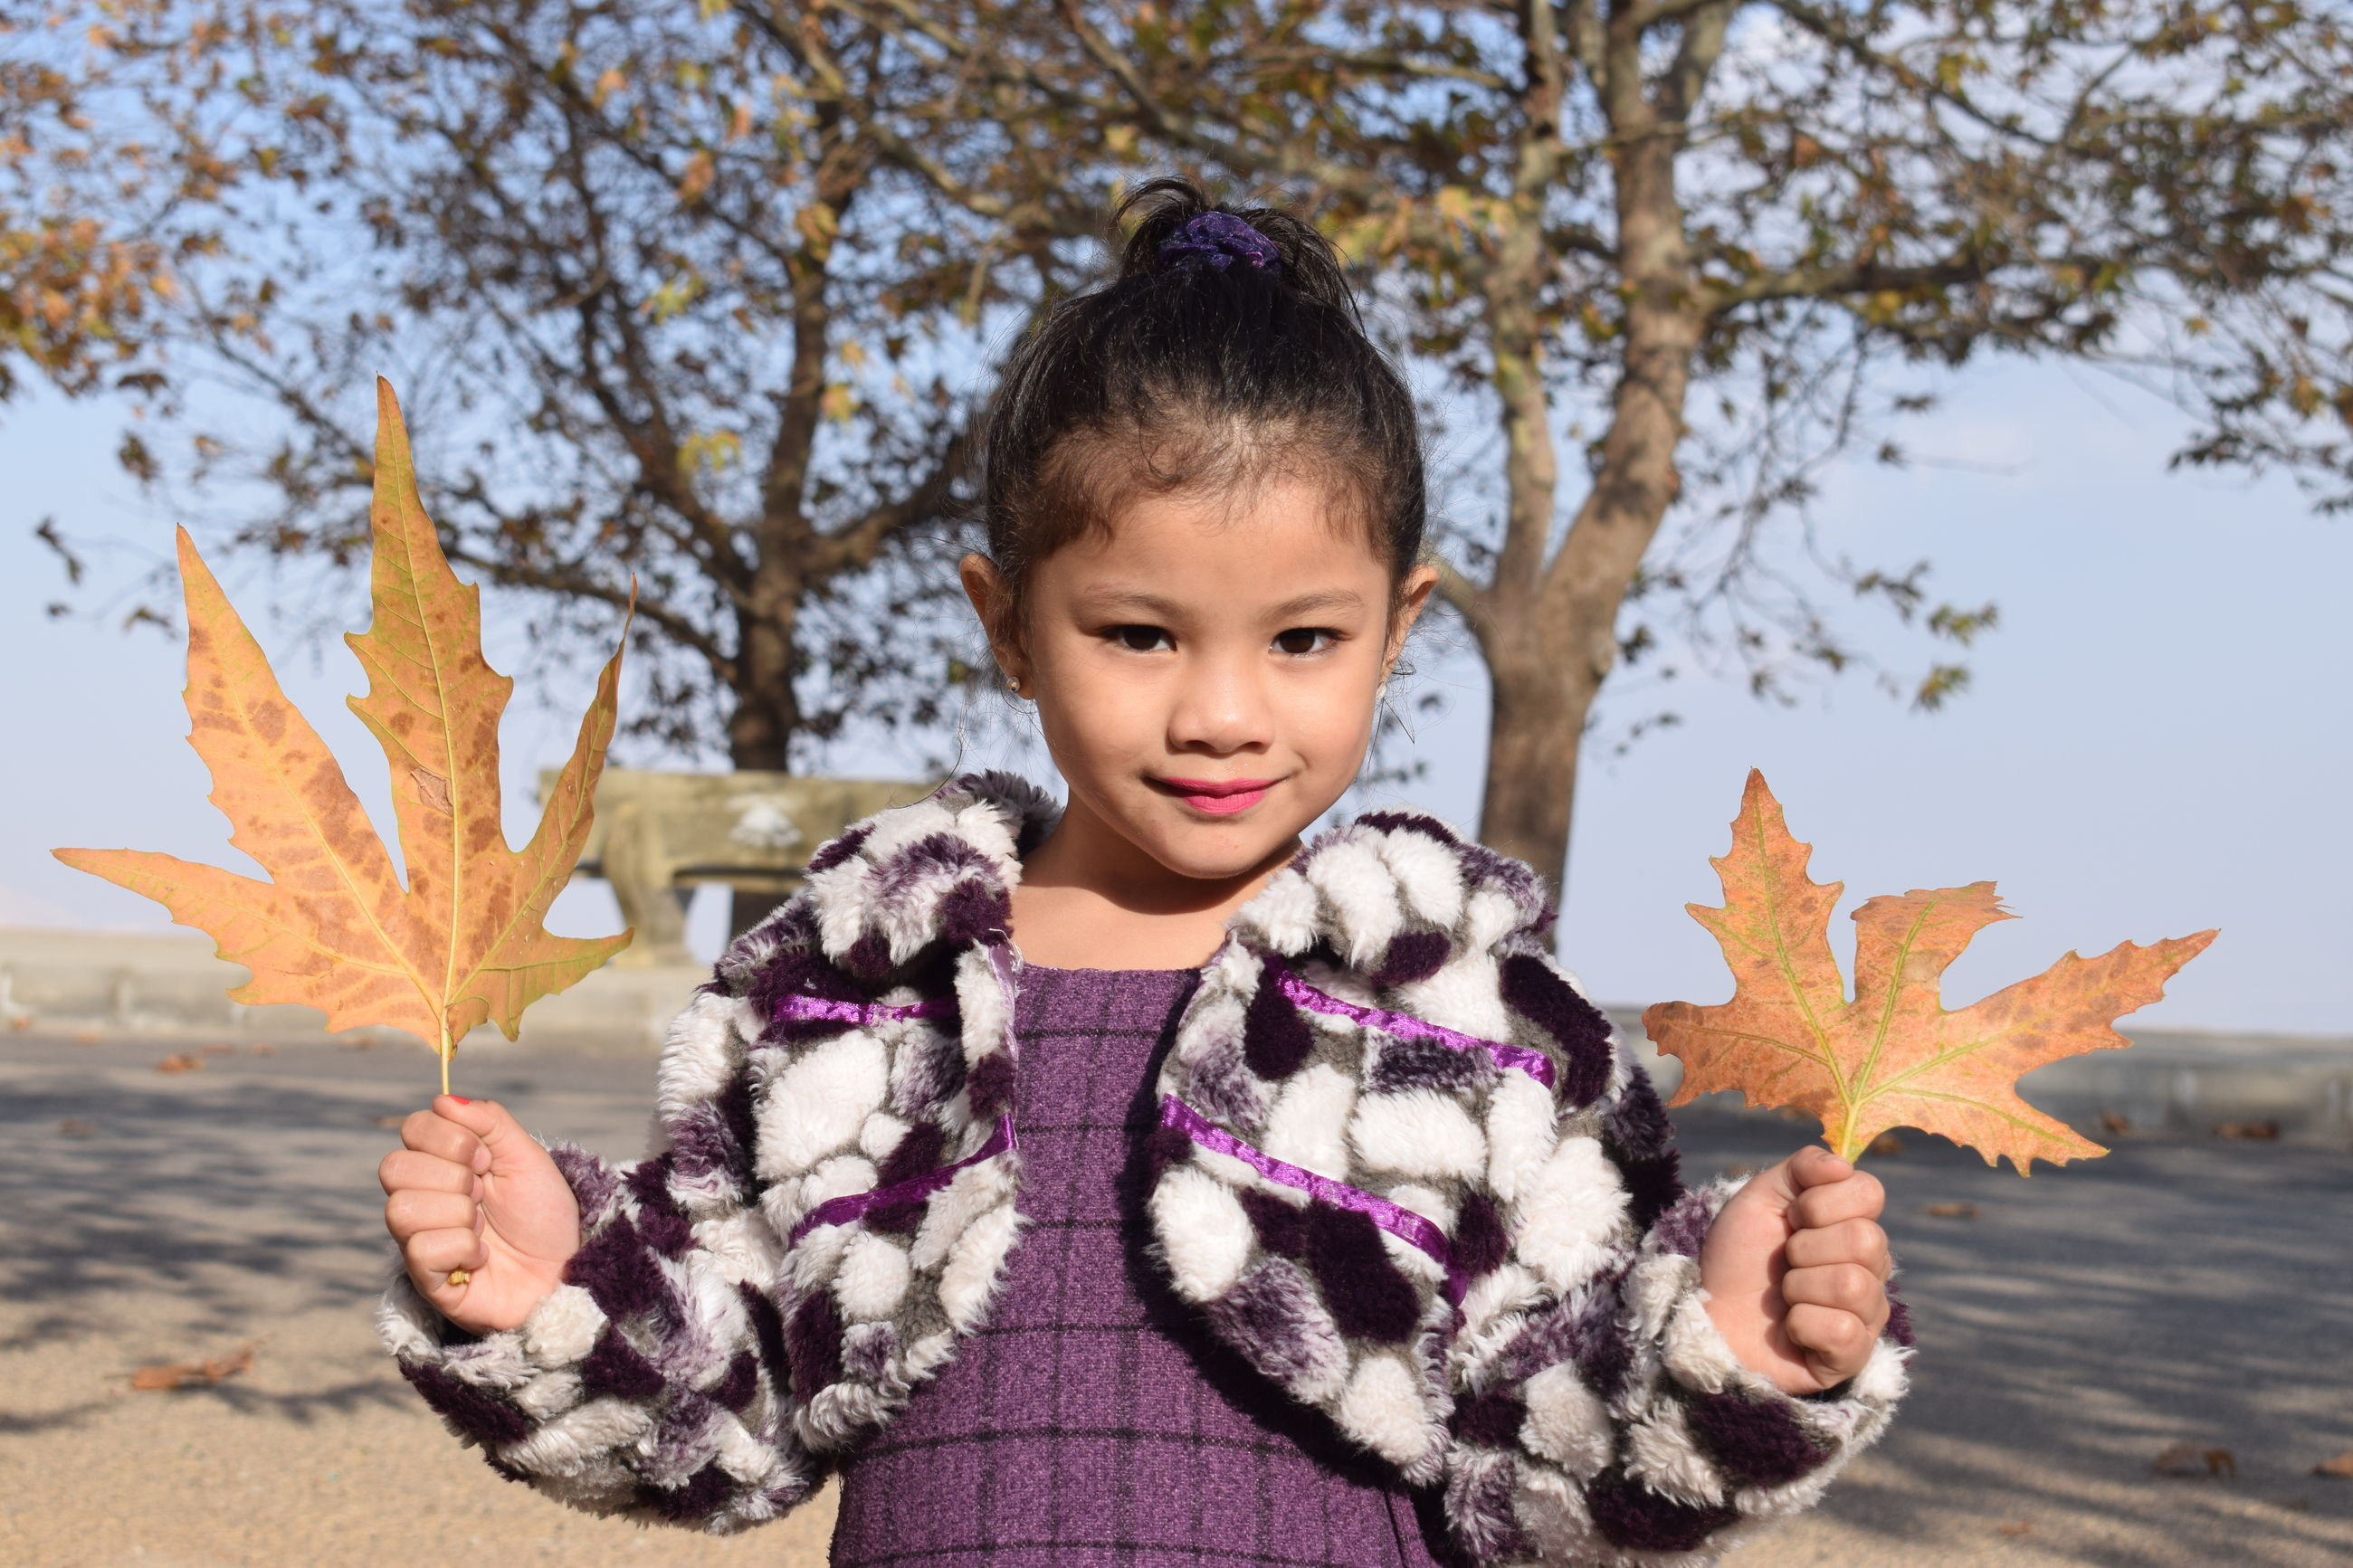 autumn, leaf, change, maple leaf, nature, front view, childhood, outdoors, tree, day, focus on foreground, one person, holding, close-up, headshot, maple, girls, real people, beauty in nature, human hand, people